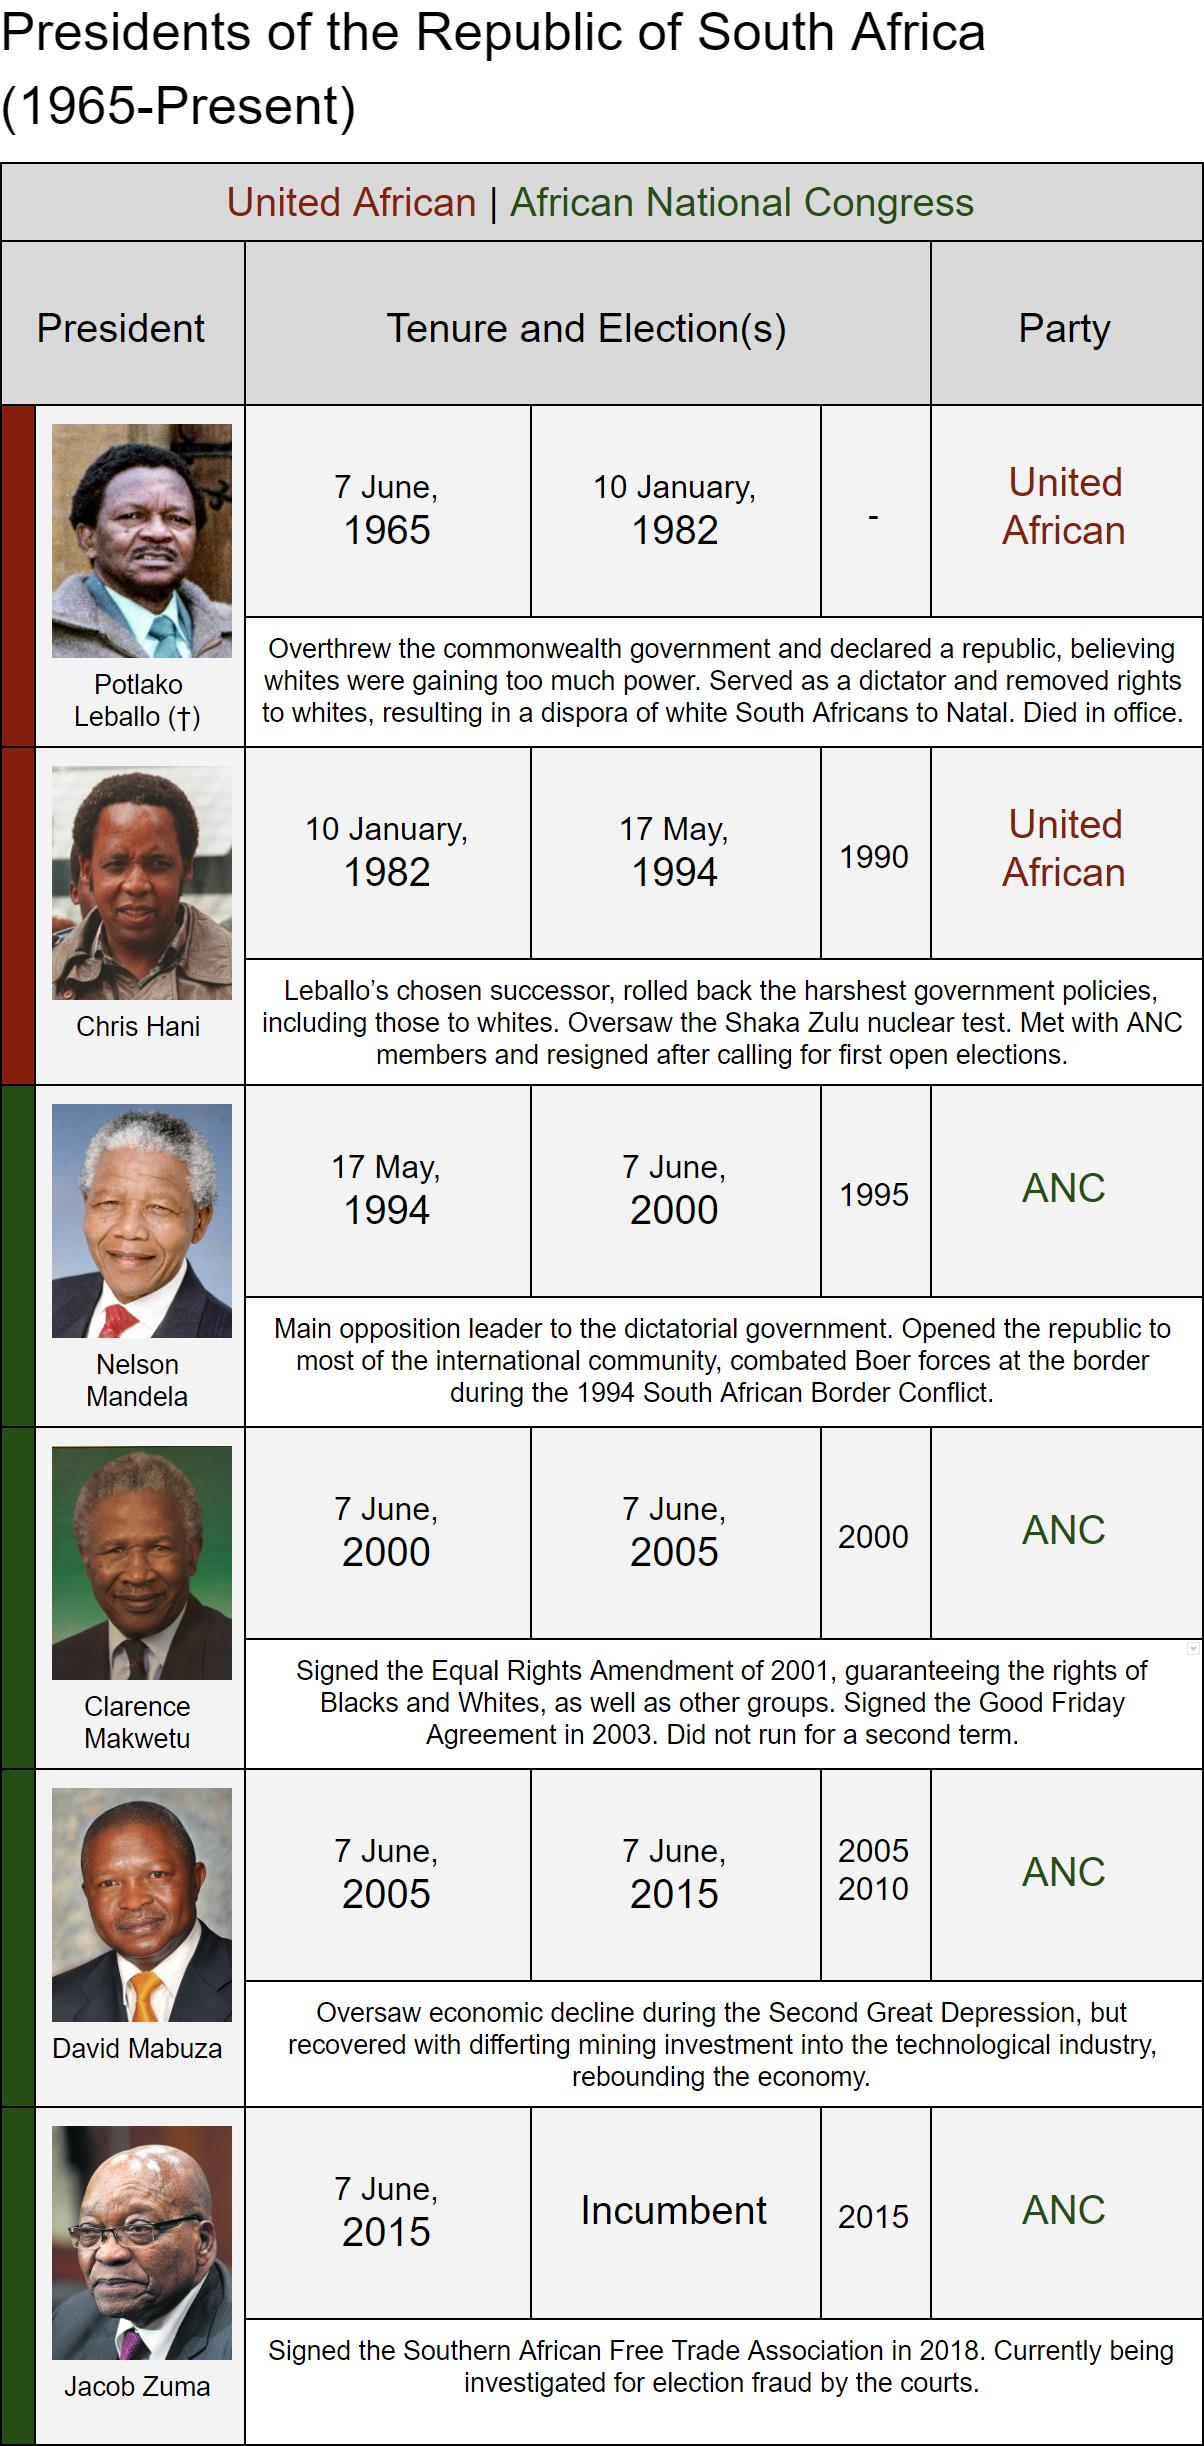 South African Presidents PEG.jpg